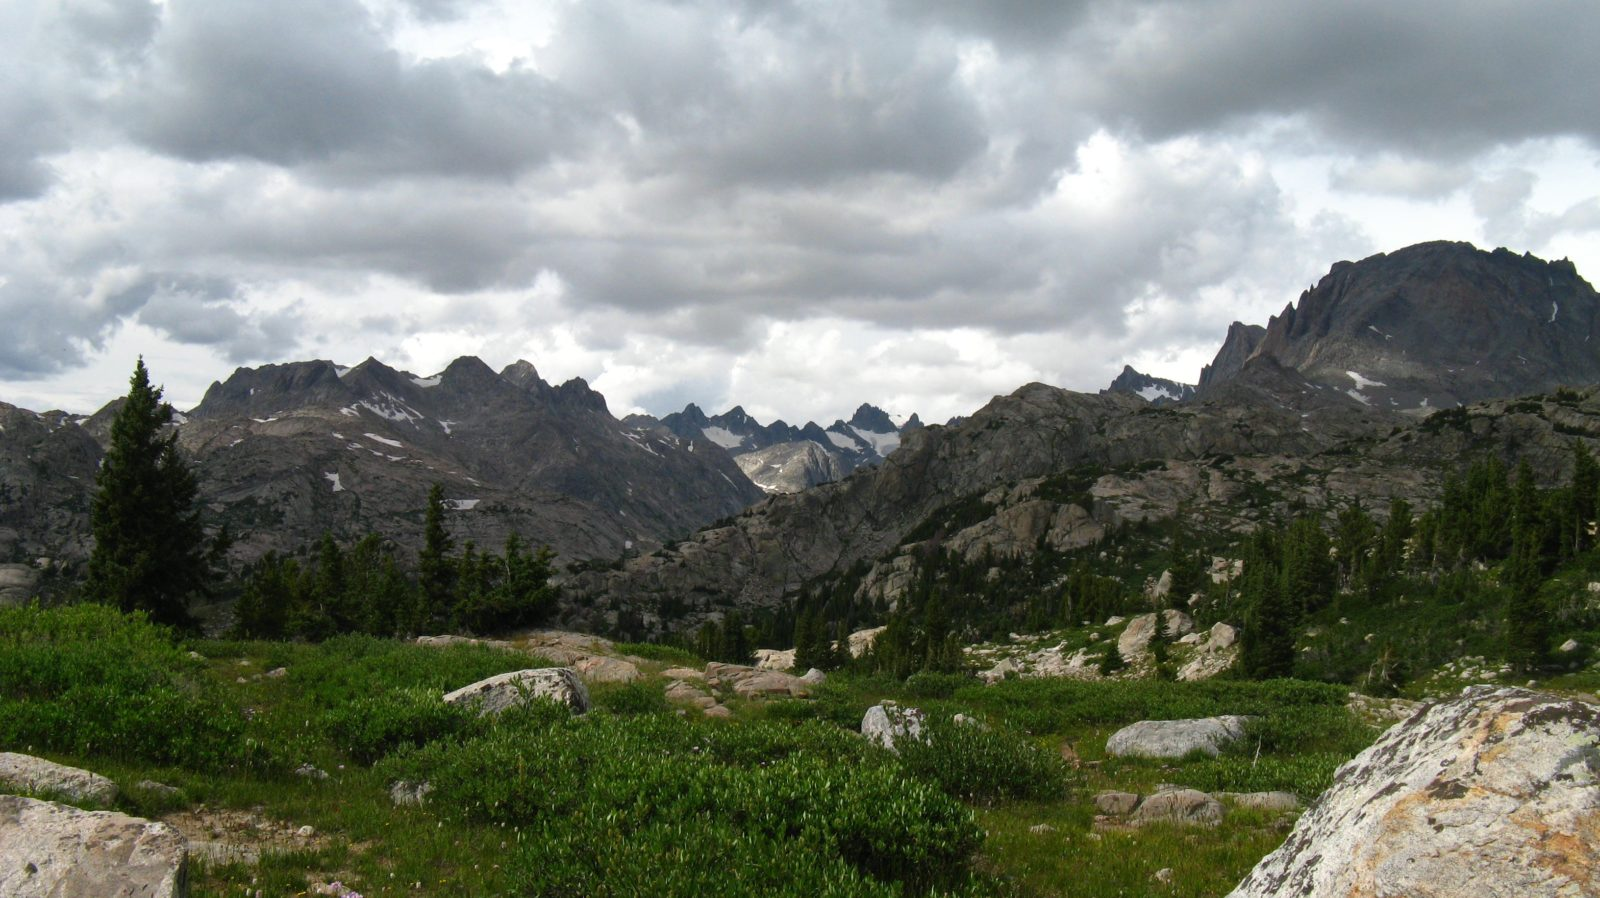 Wind River Range Scenery